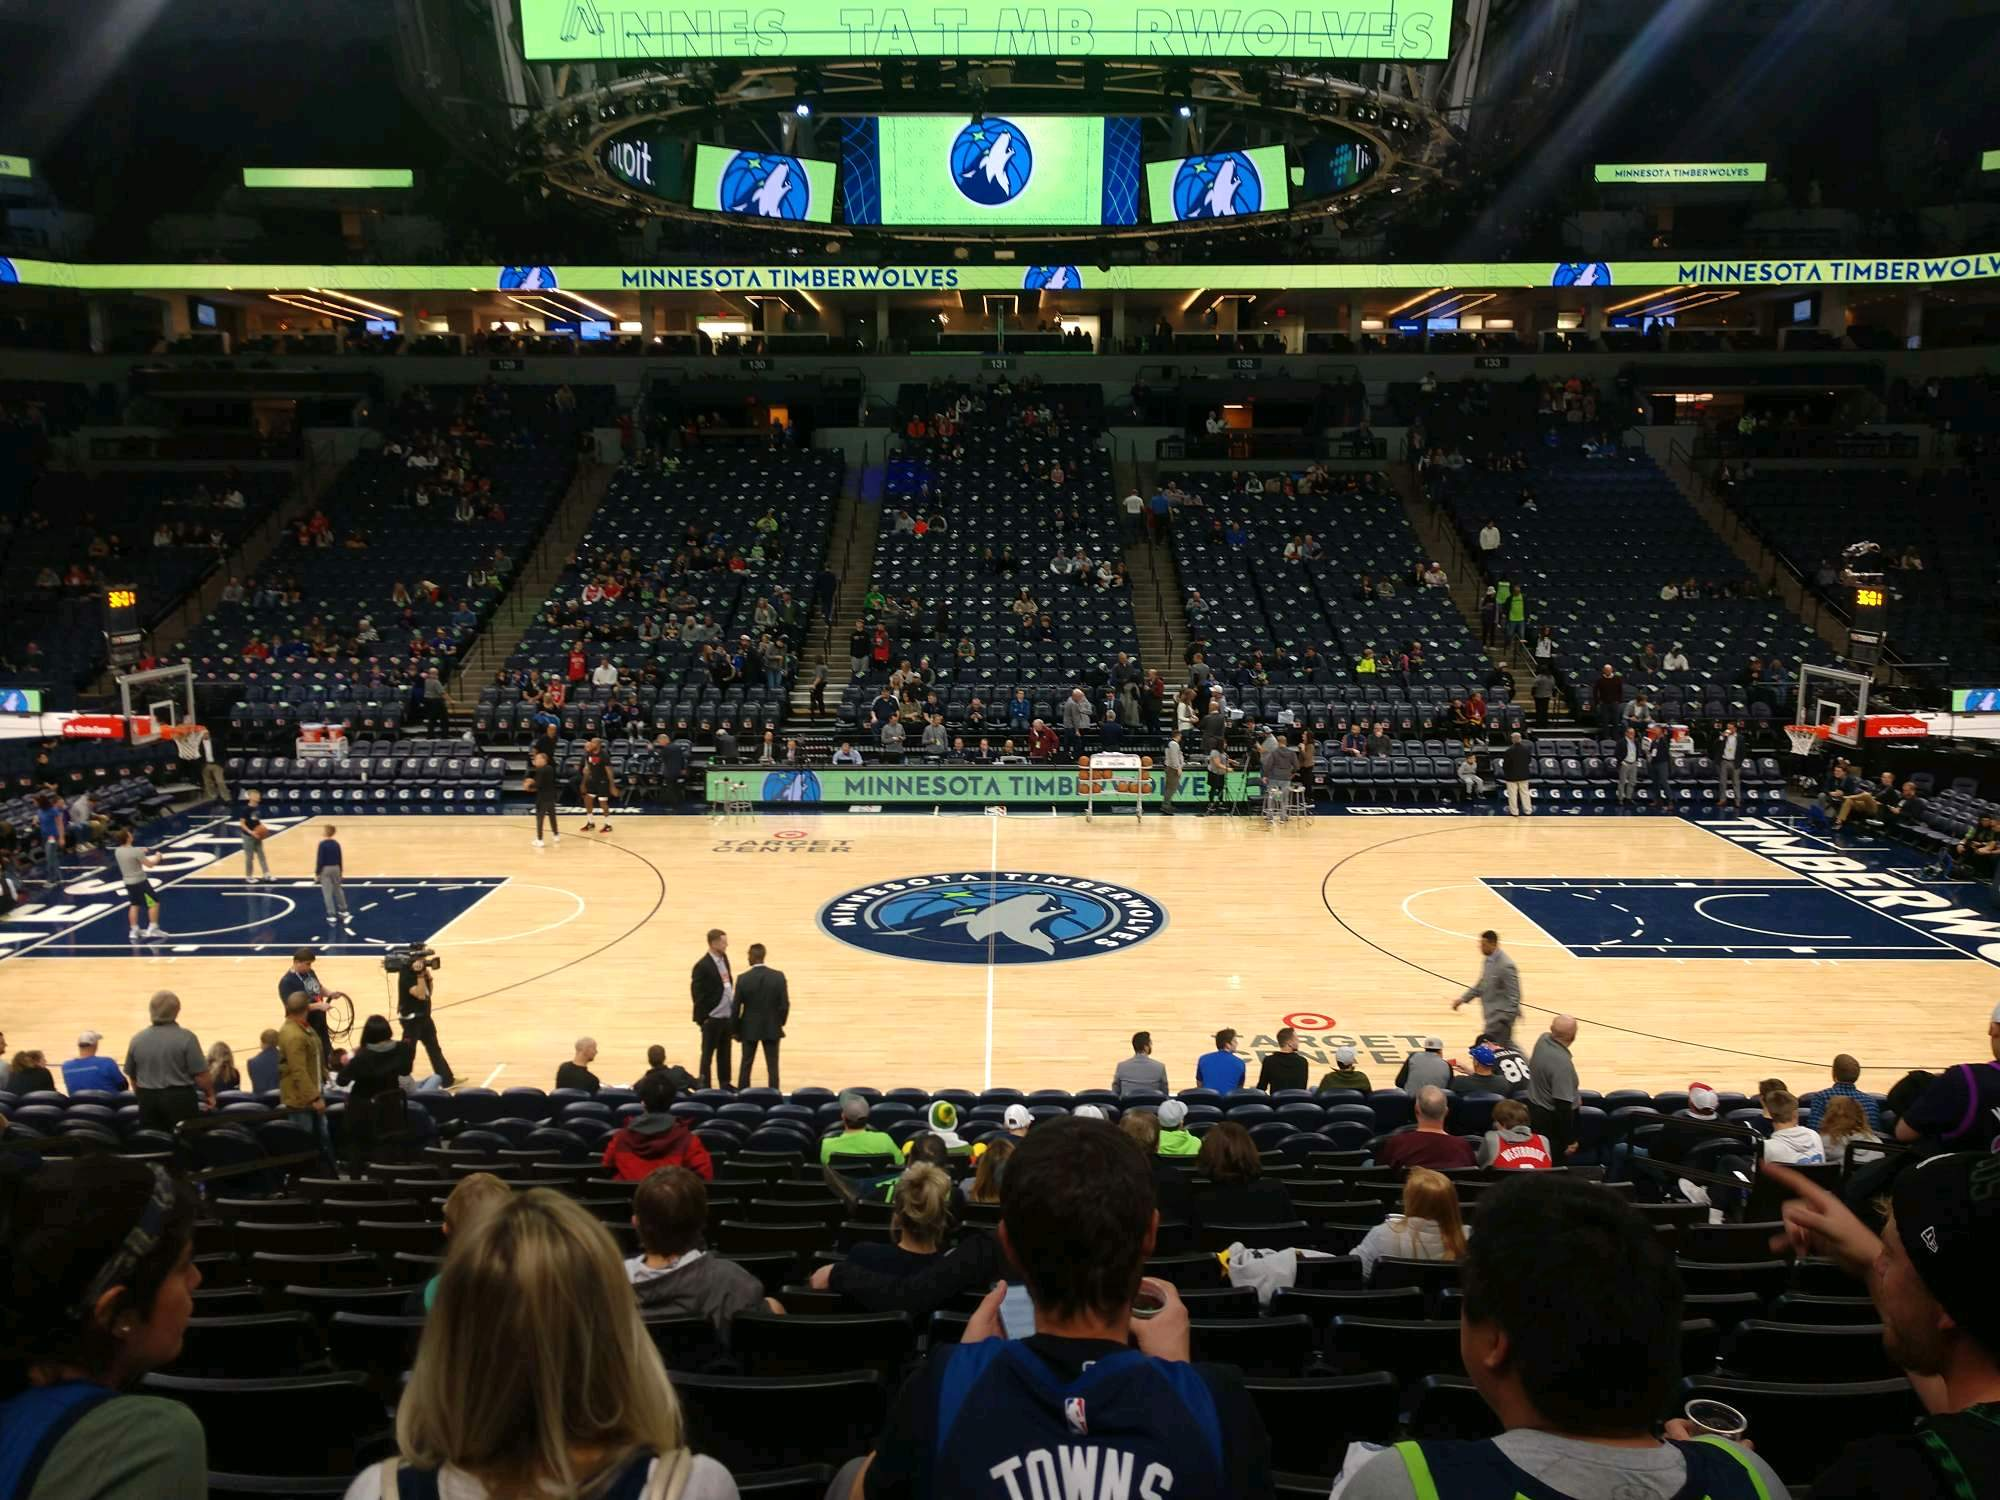 Target Center Section 111 Row N Seat 7